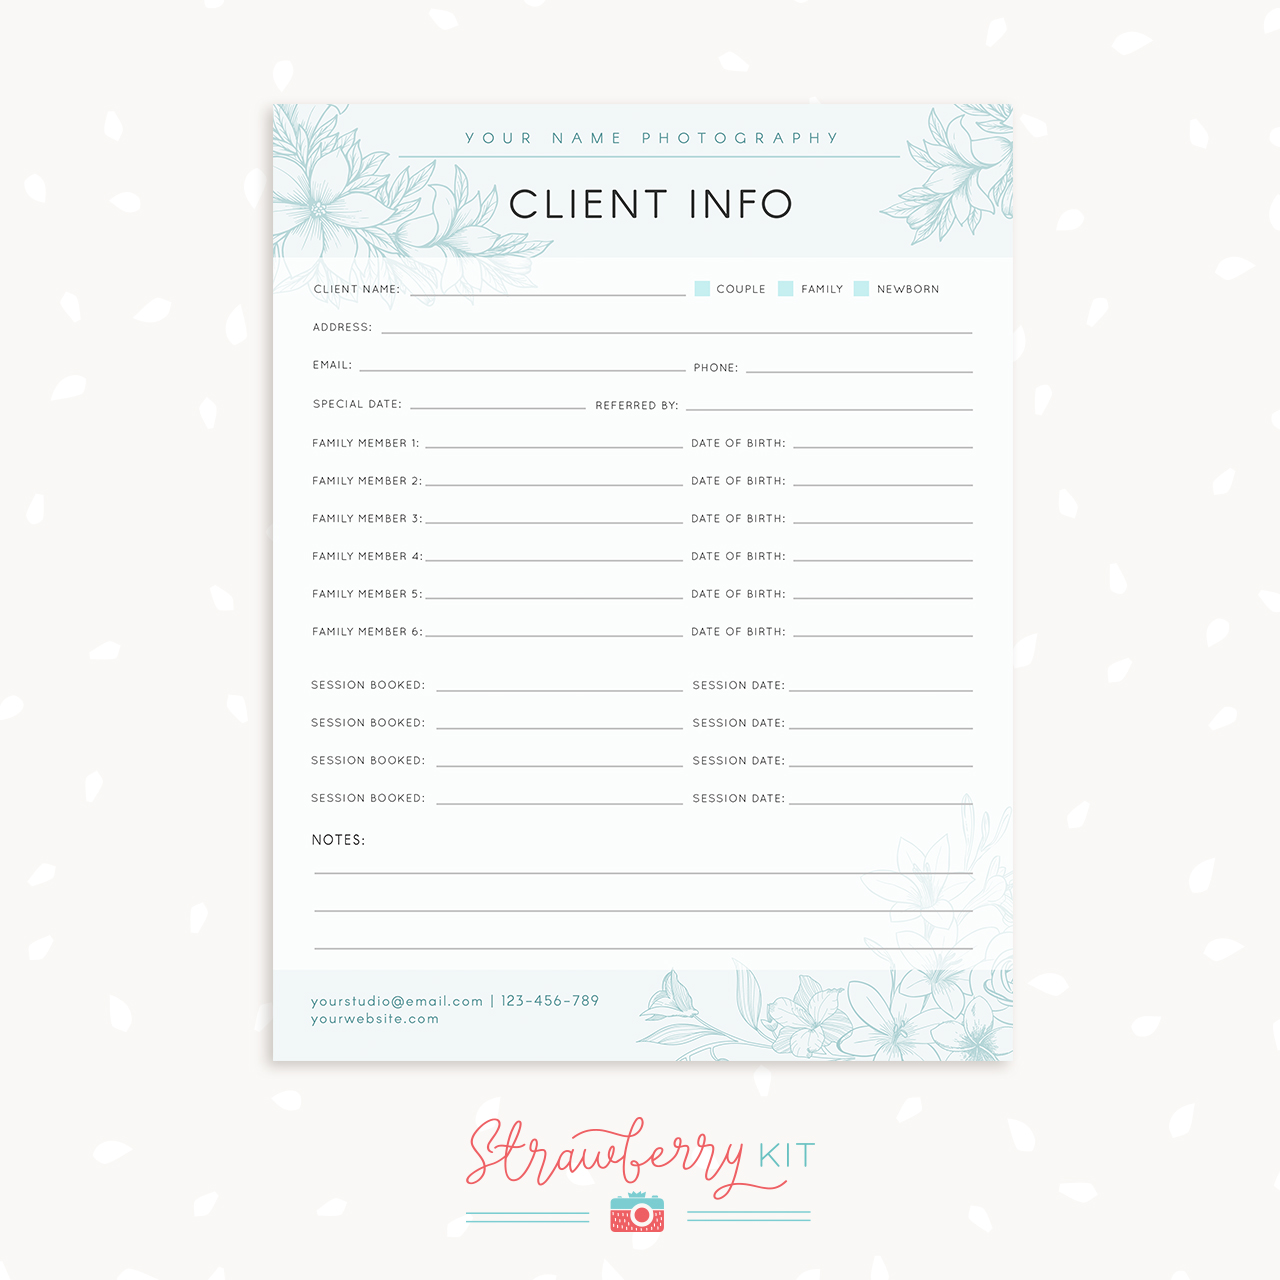 Client Information Template for Photographers - Strawberry Kit